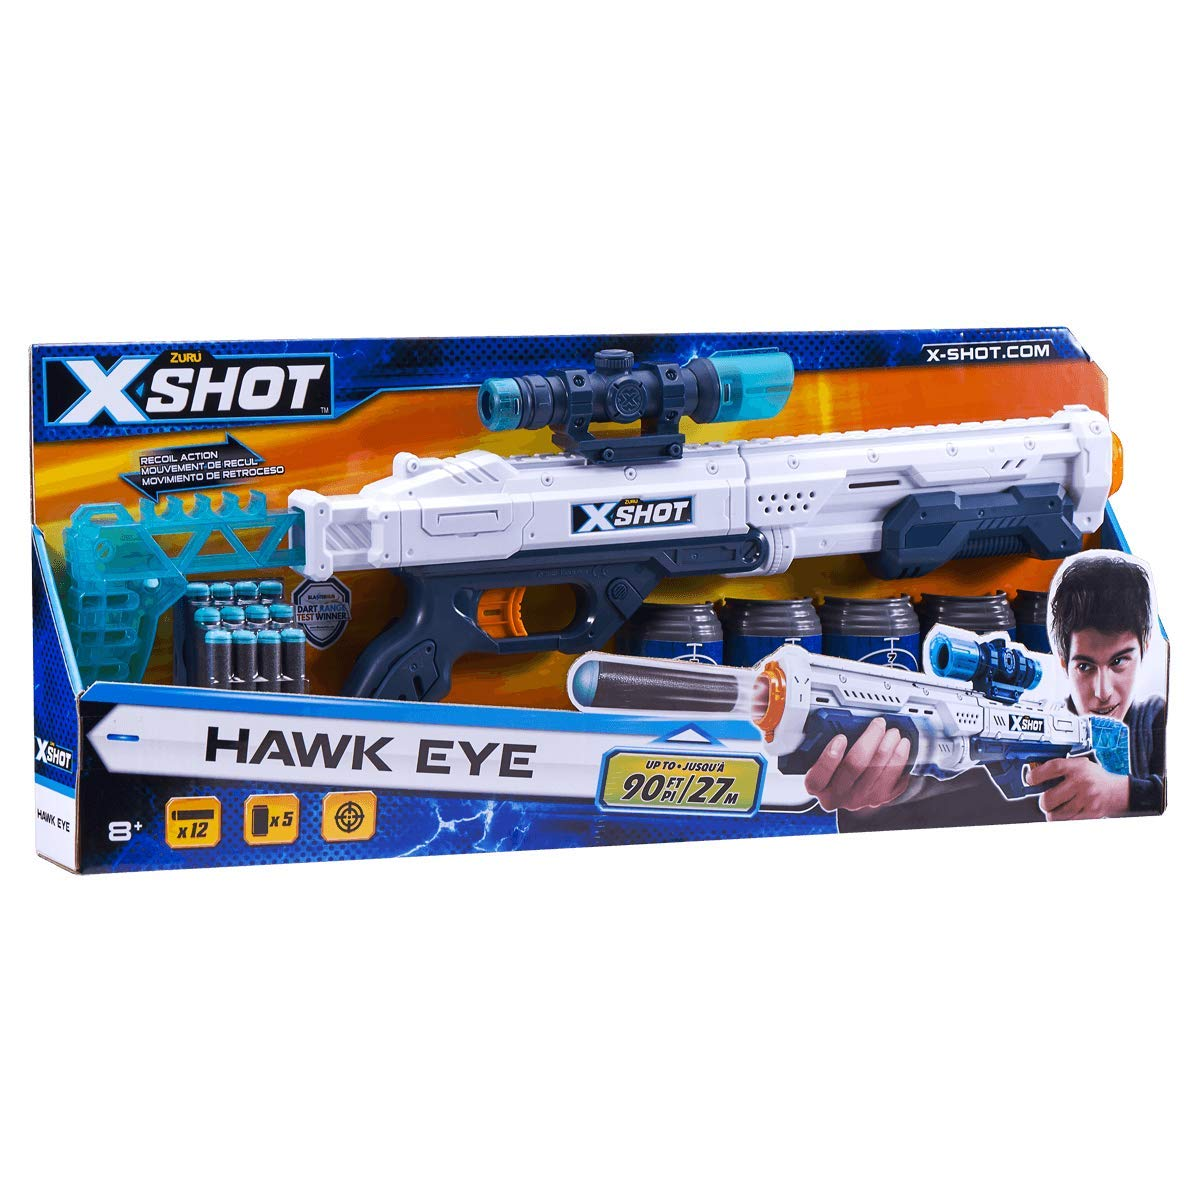 Set pusca X-Shot Hawk Eye cu luneta, 12 proiectile, 5 tinte imagine 2021